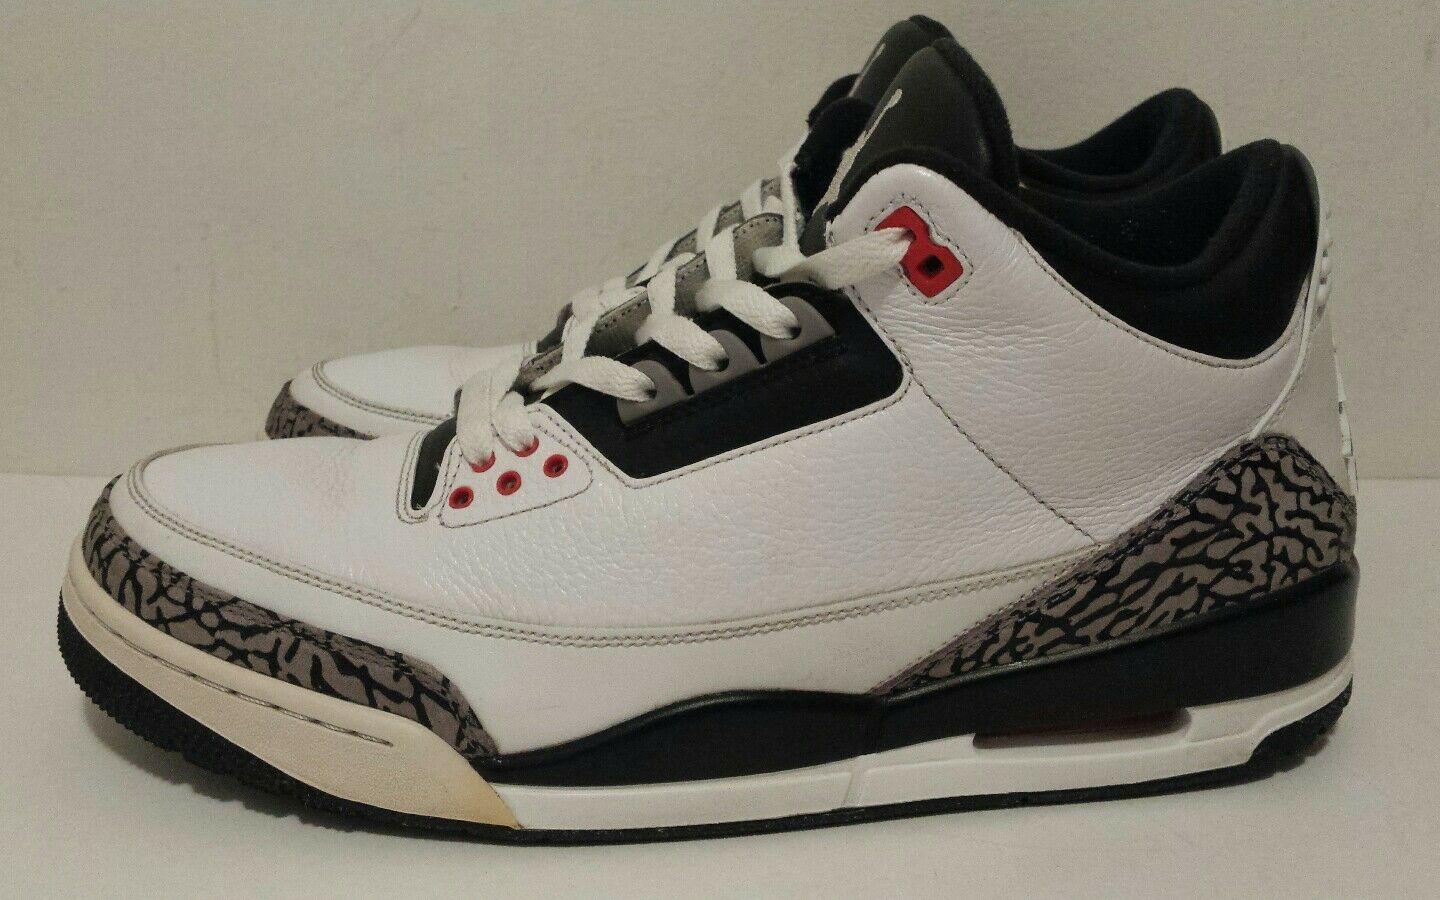 Air Jordan 3 Retro 'Infrared 23' - 136064-123 - Size 12 - 2ACzr